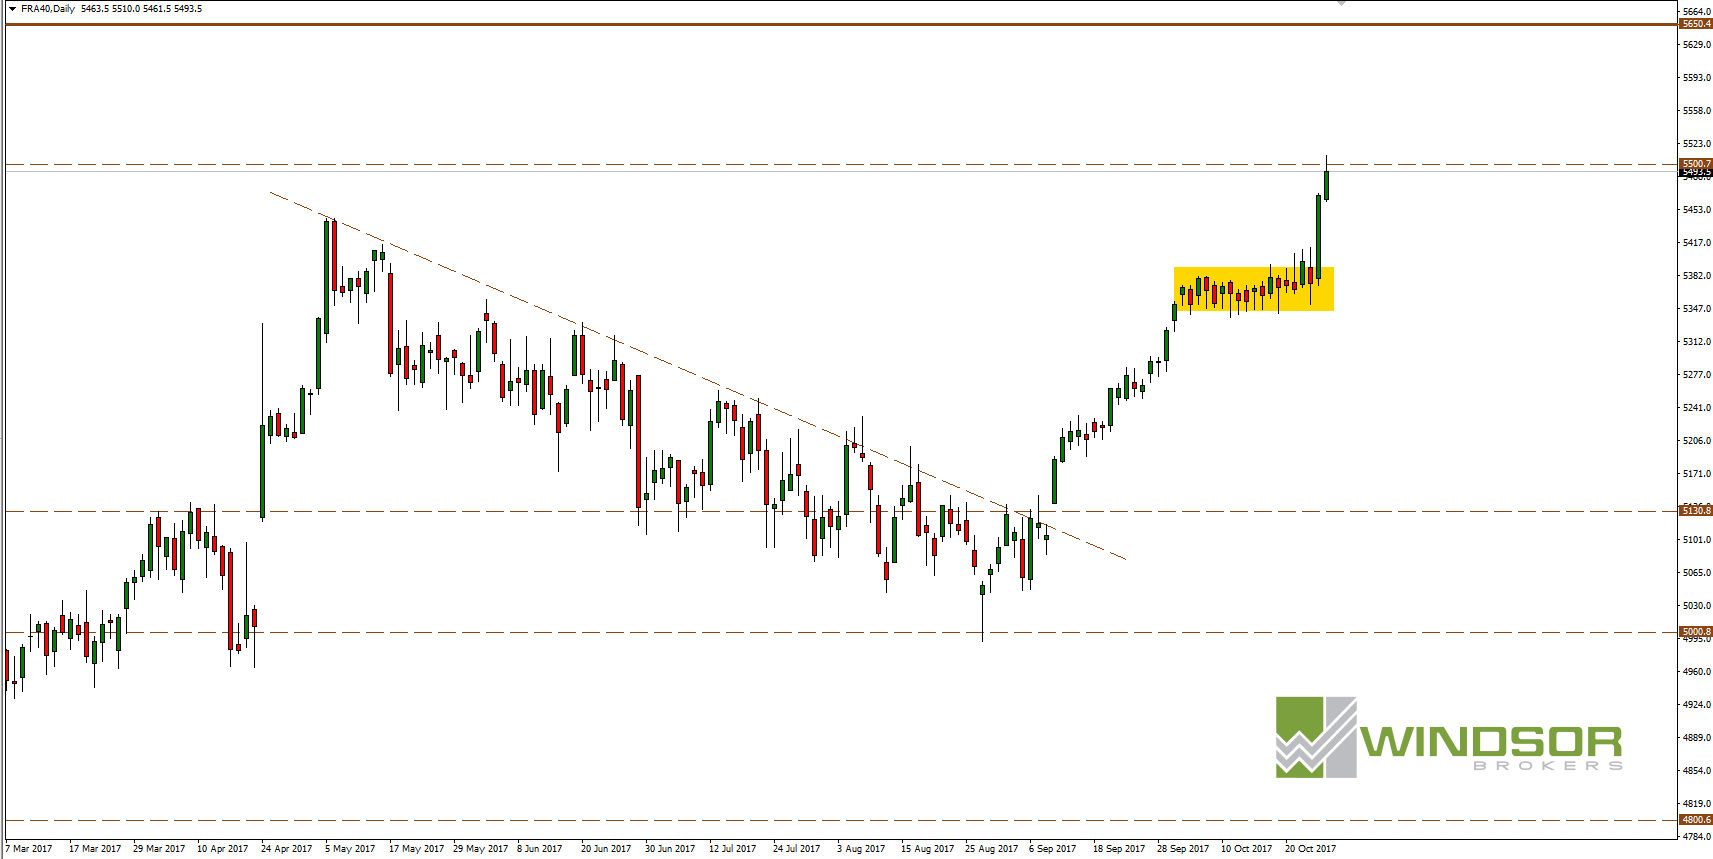 CAC40 D1